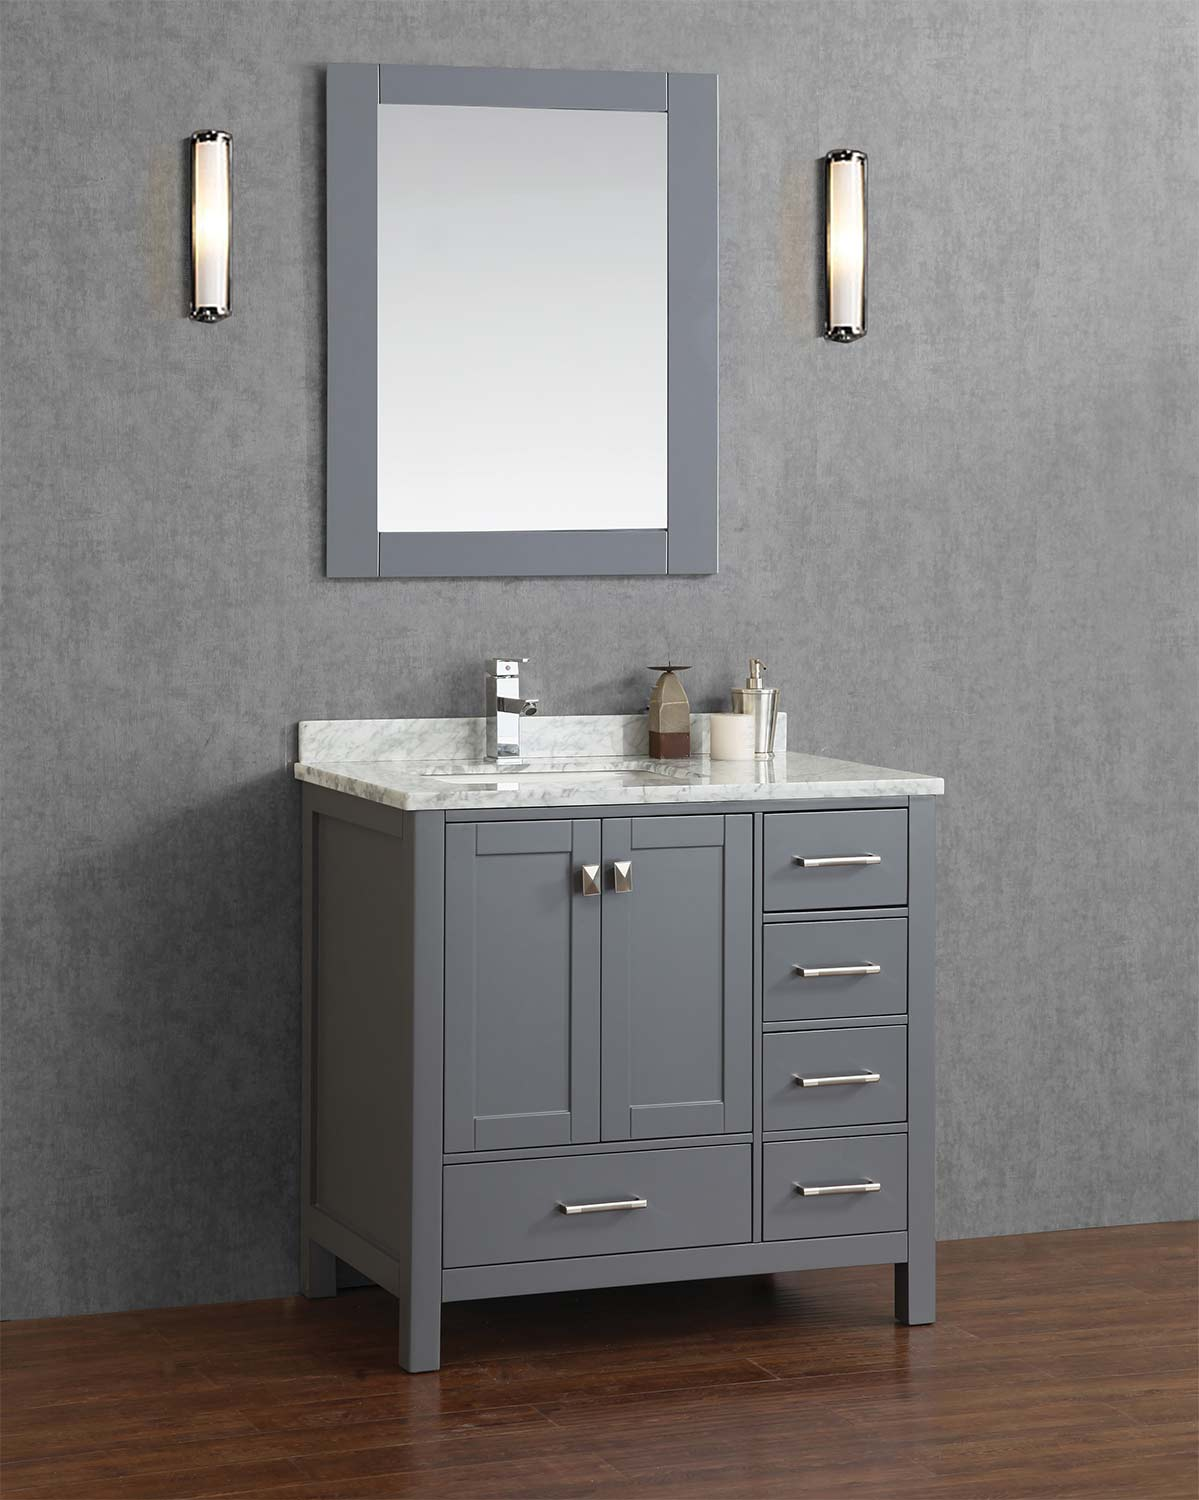 Buy vincent 36 inch solid wood single bathroom vanity in for Bathroom ideas grey vanity